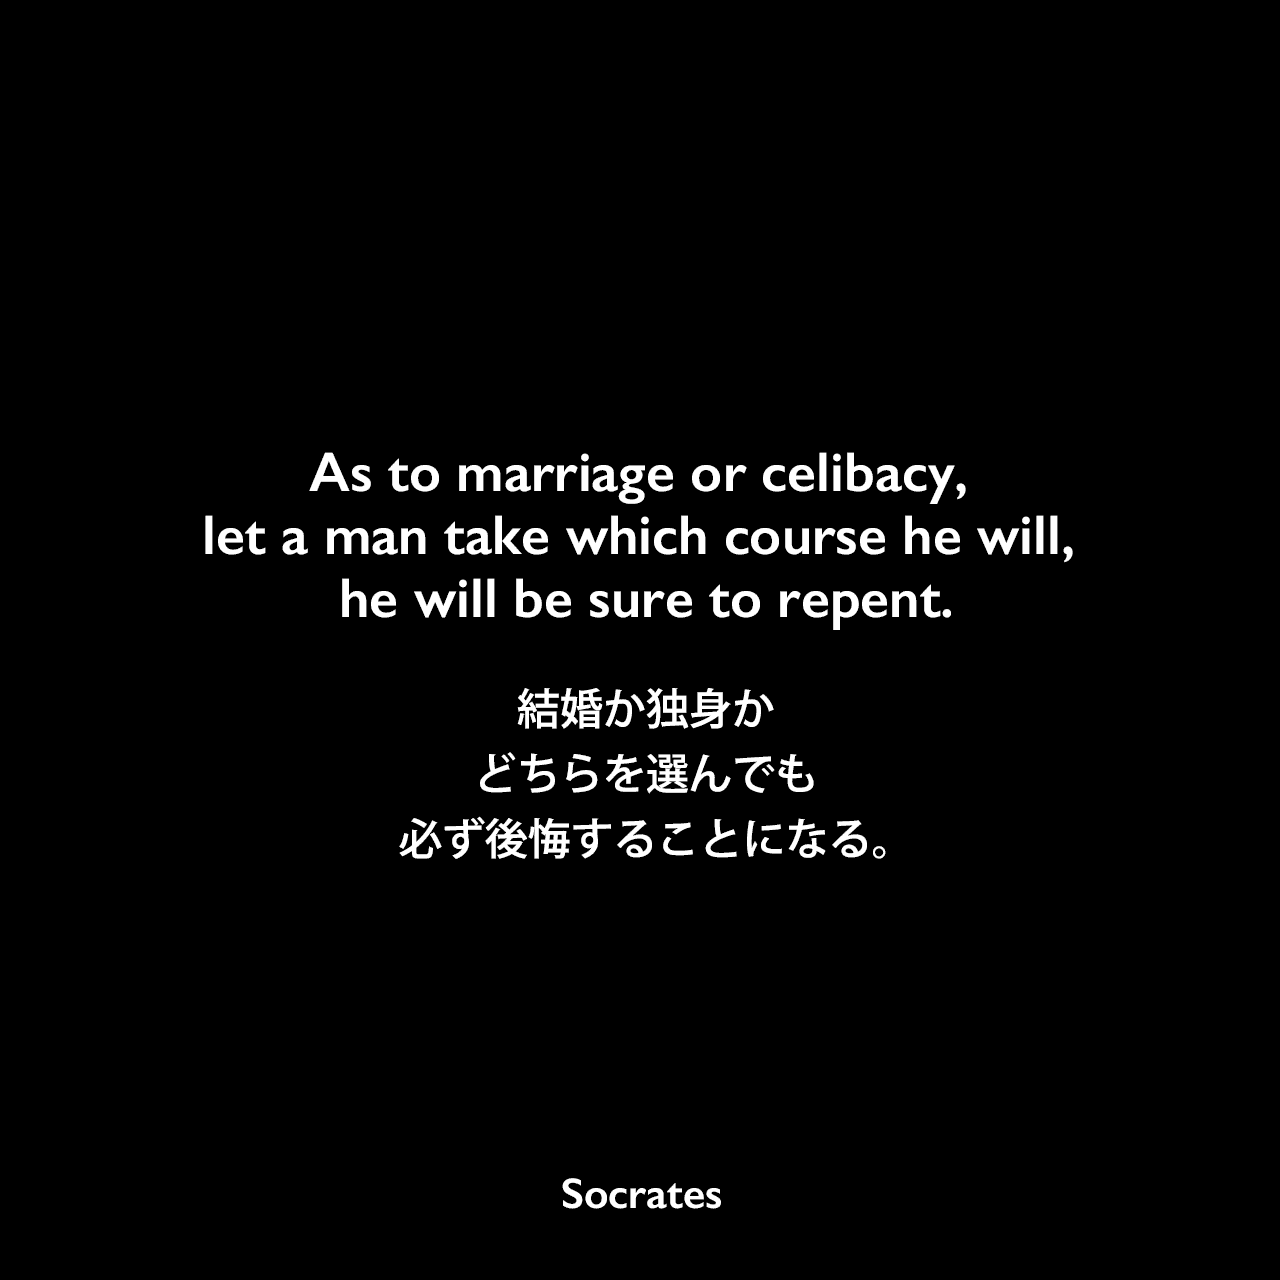 As to marriage or celibacy, let a man take which course he will, he will be sure to repent.結婚か独身か、どちらを選んでも必ず後悔することになる。